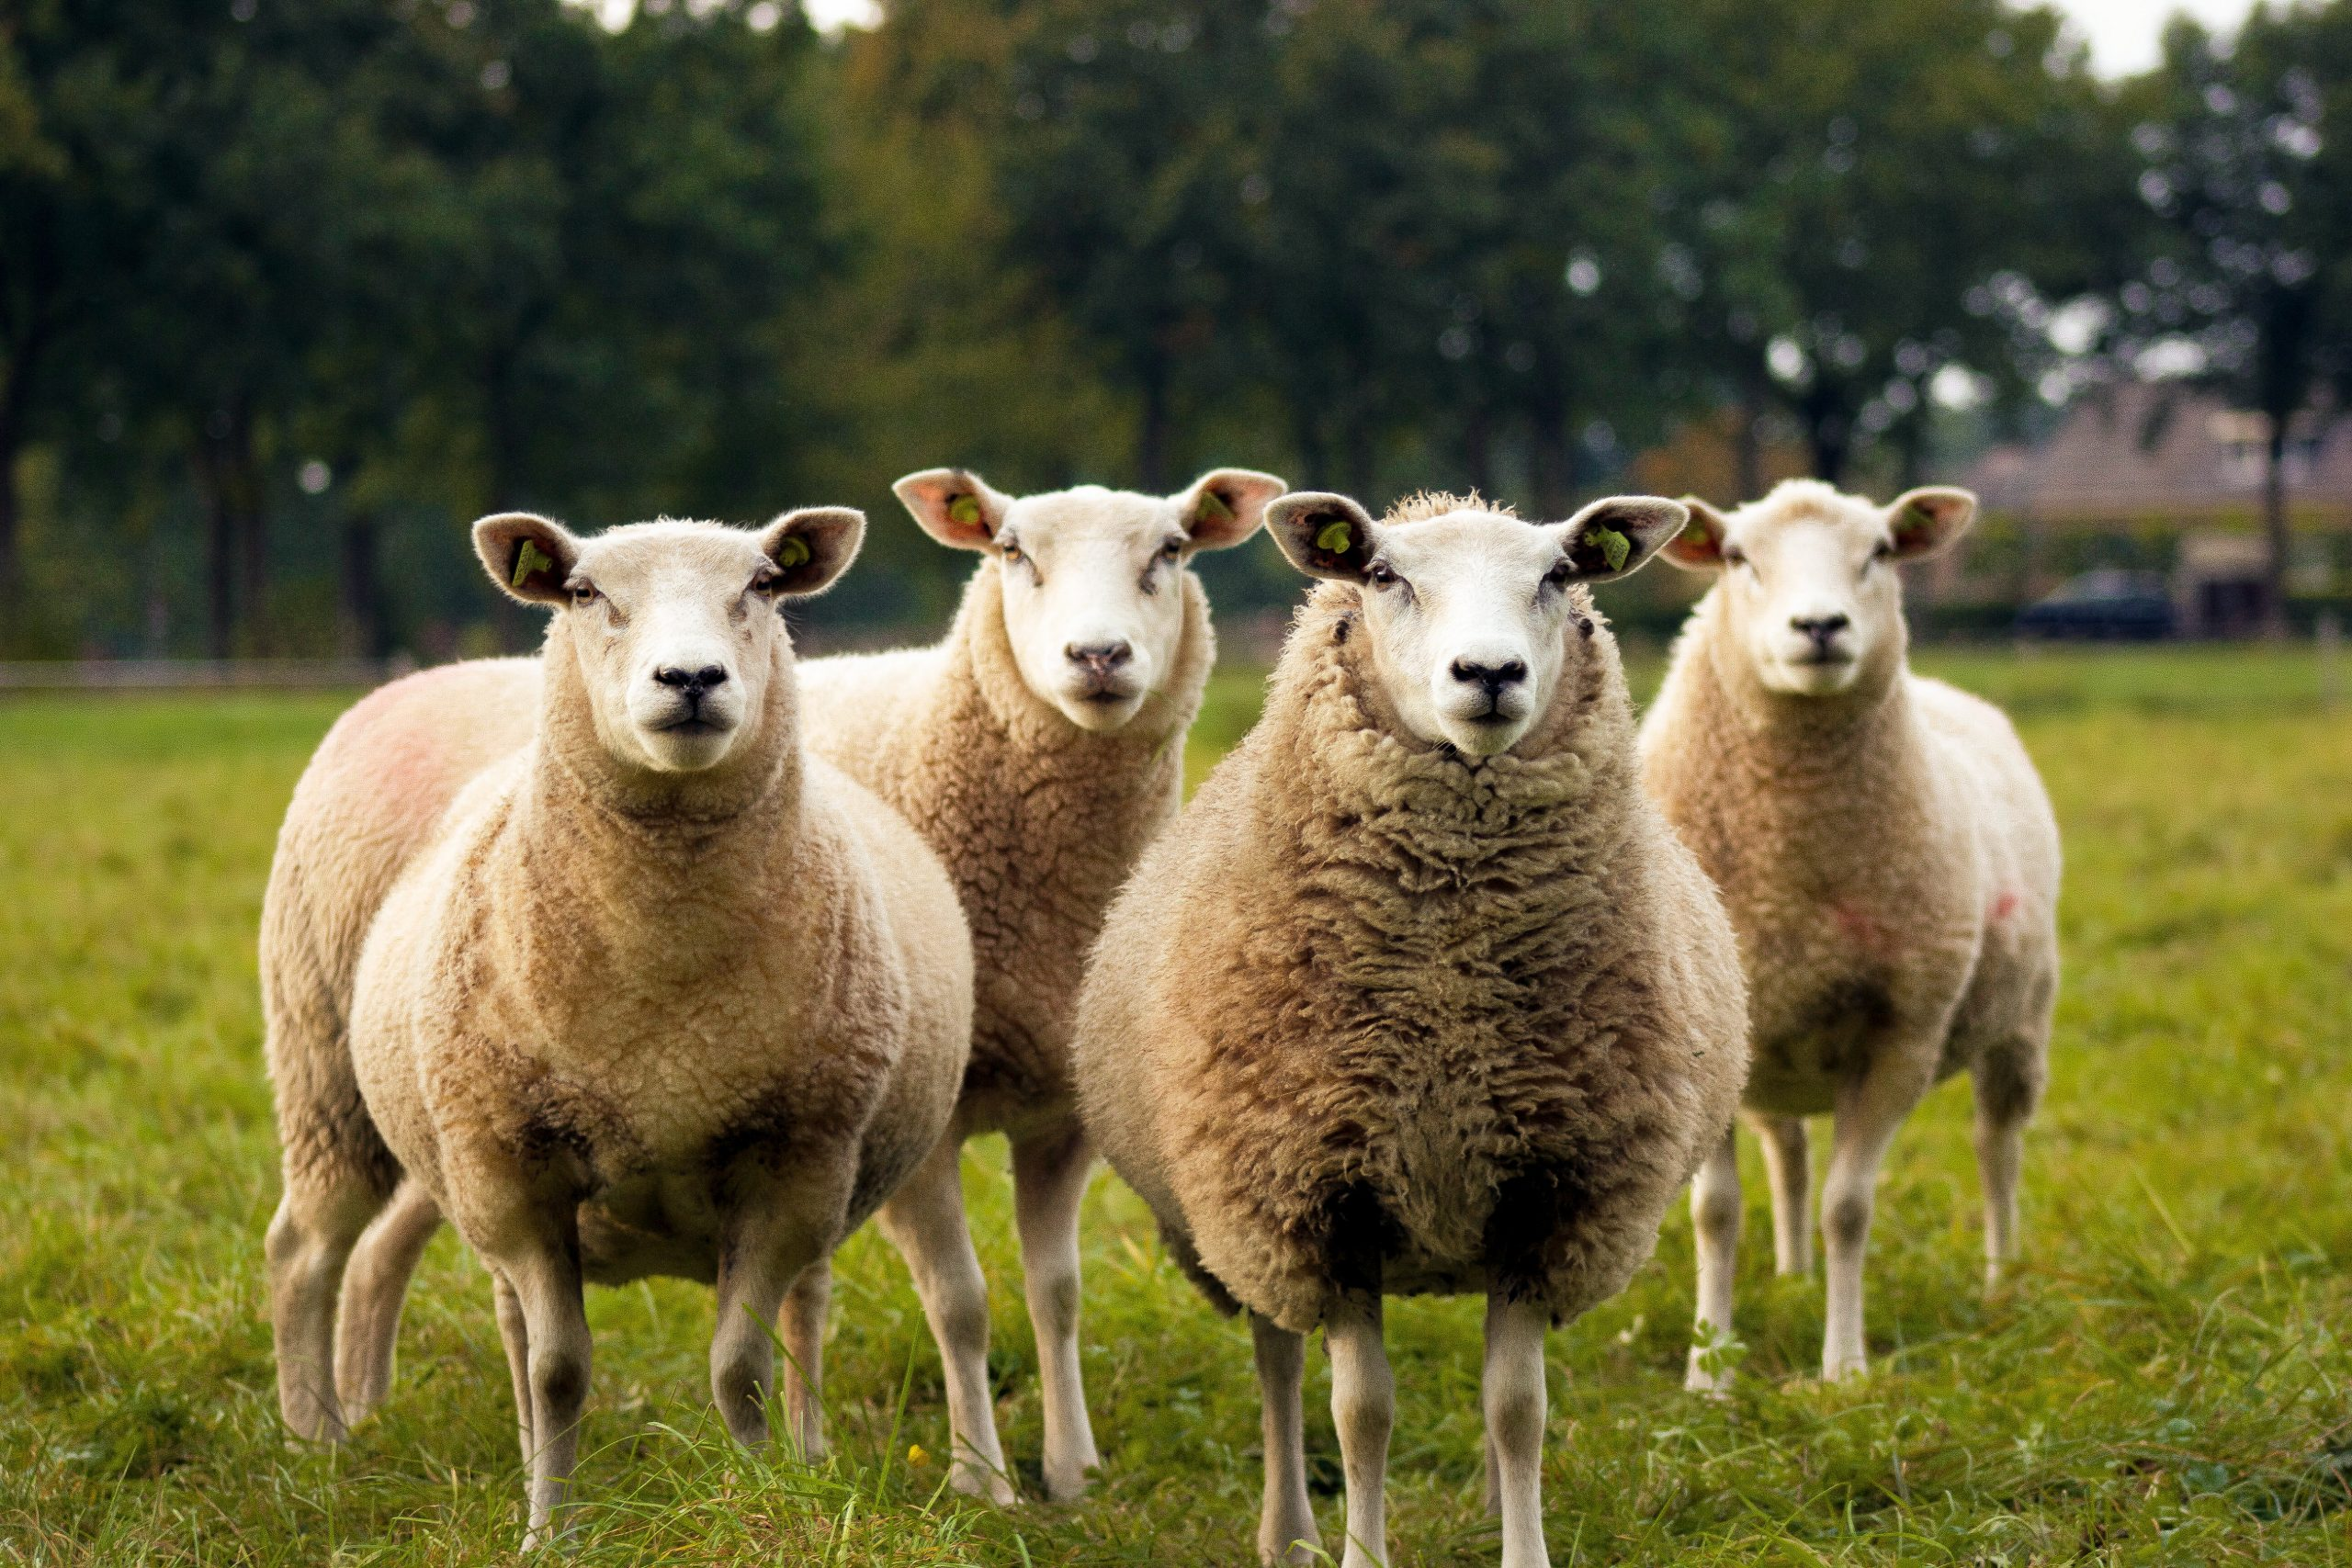 Four sheep all looking at the camera